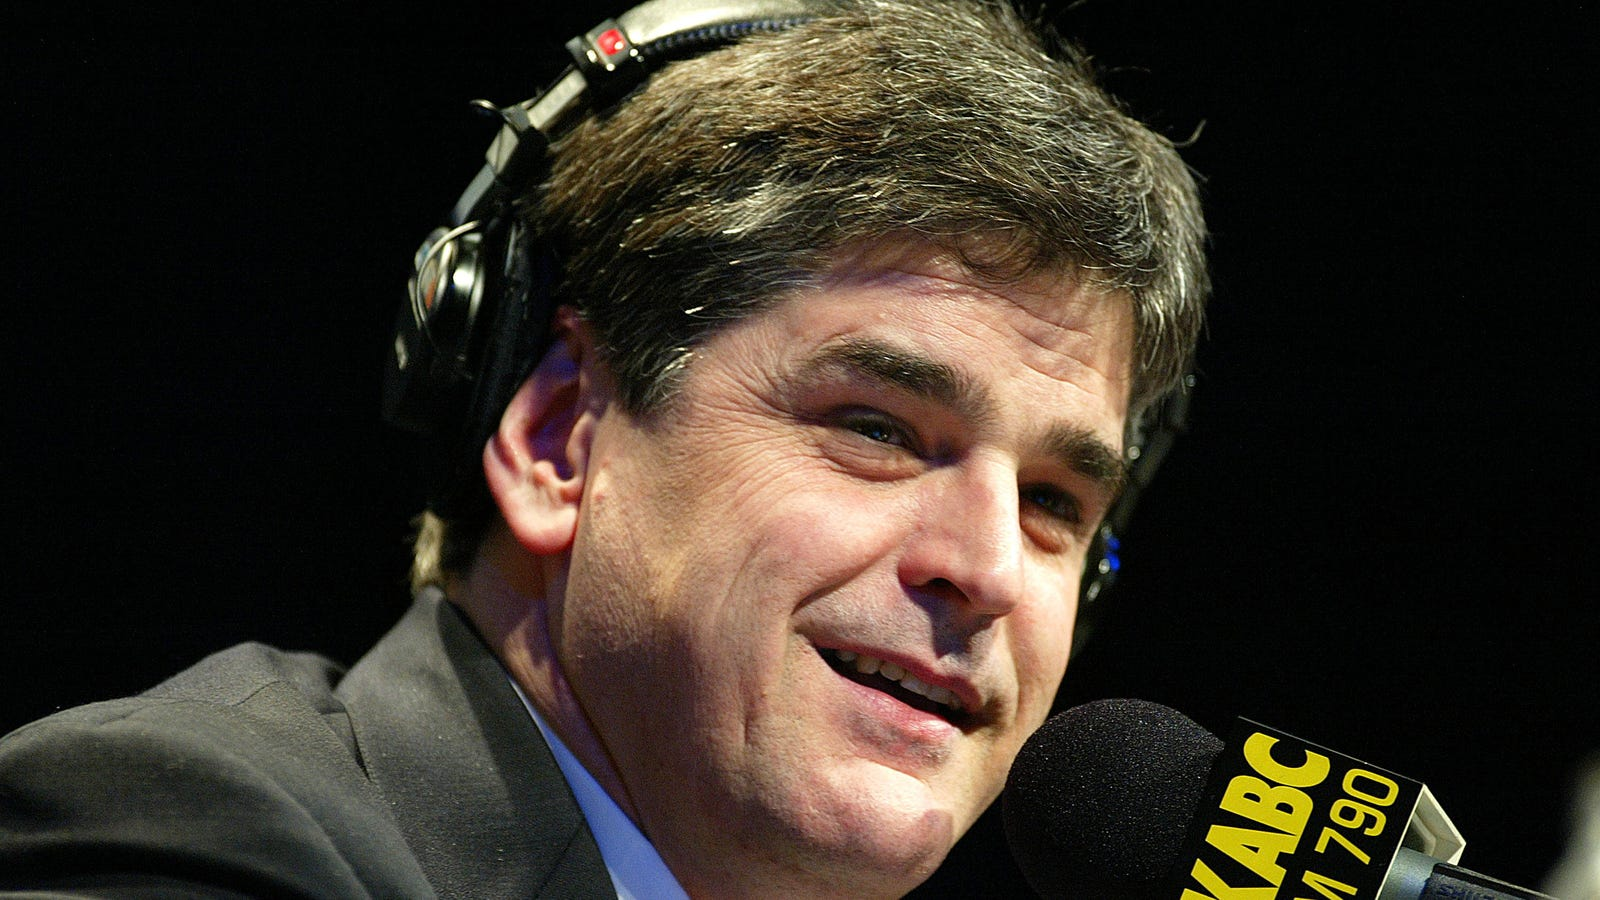 sean hannity - photo #7